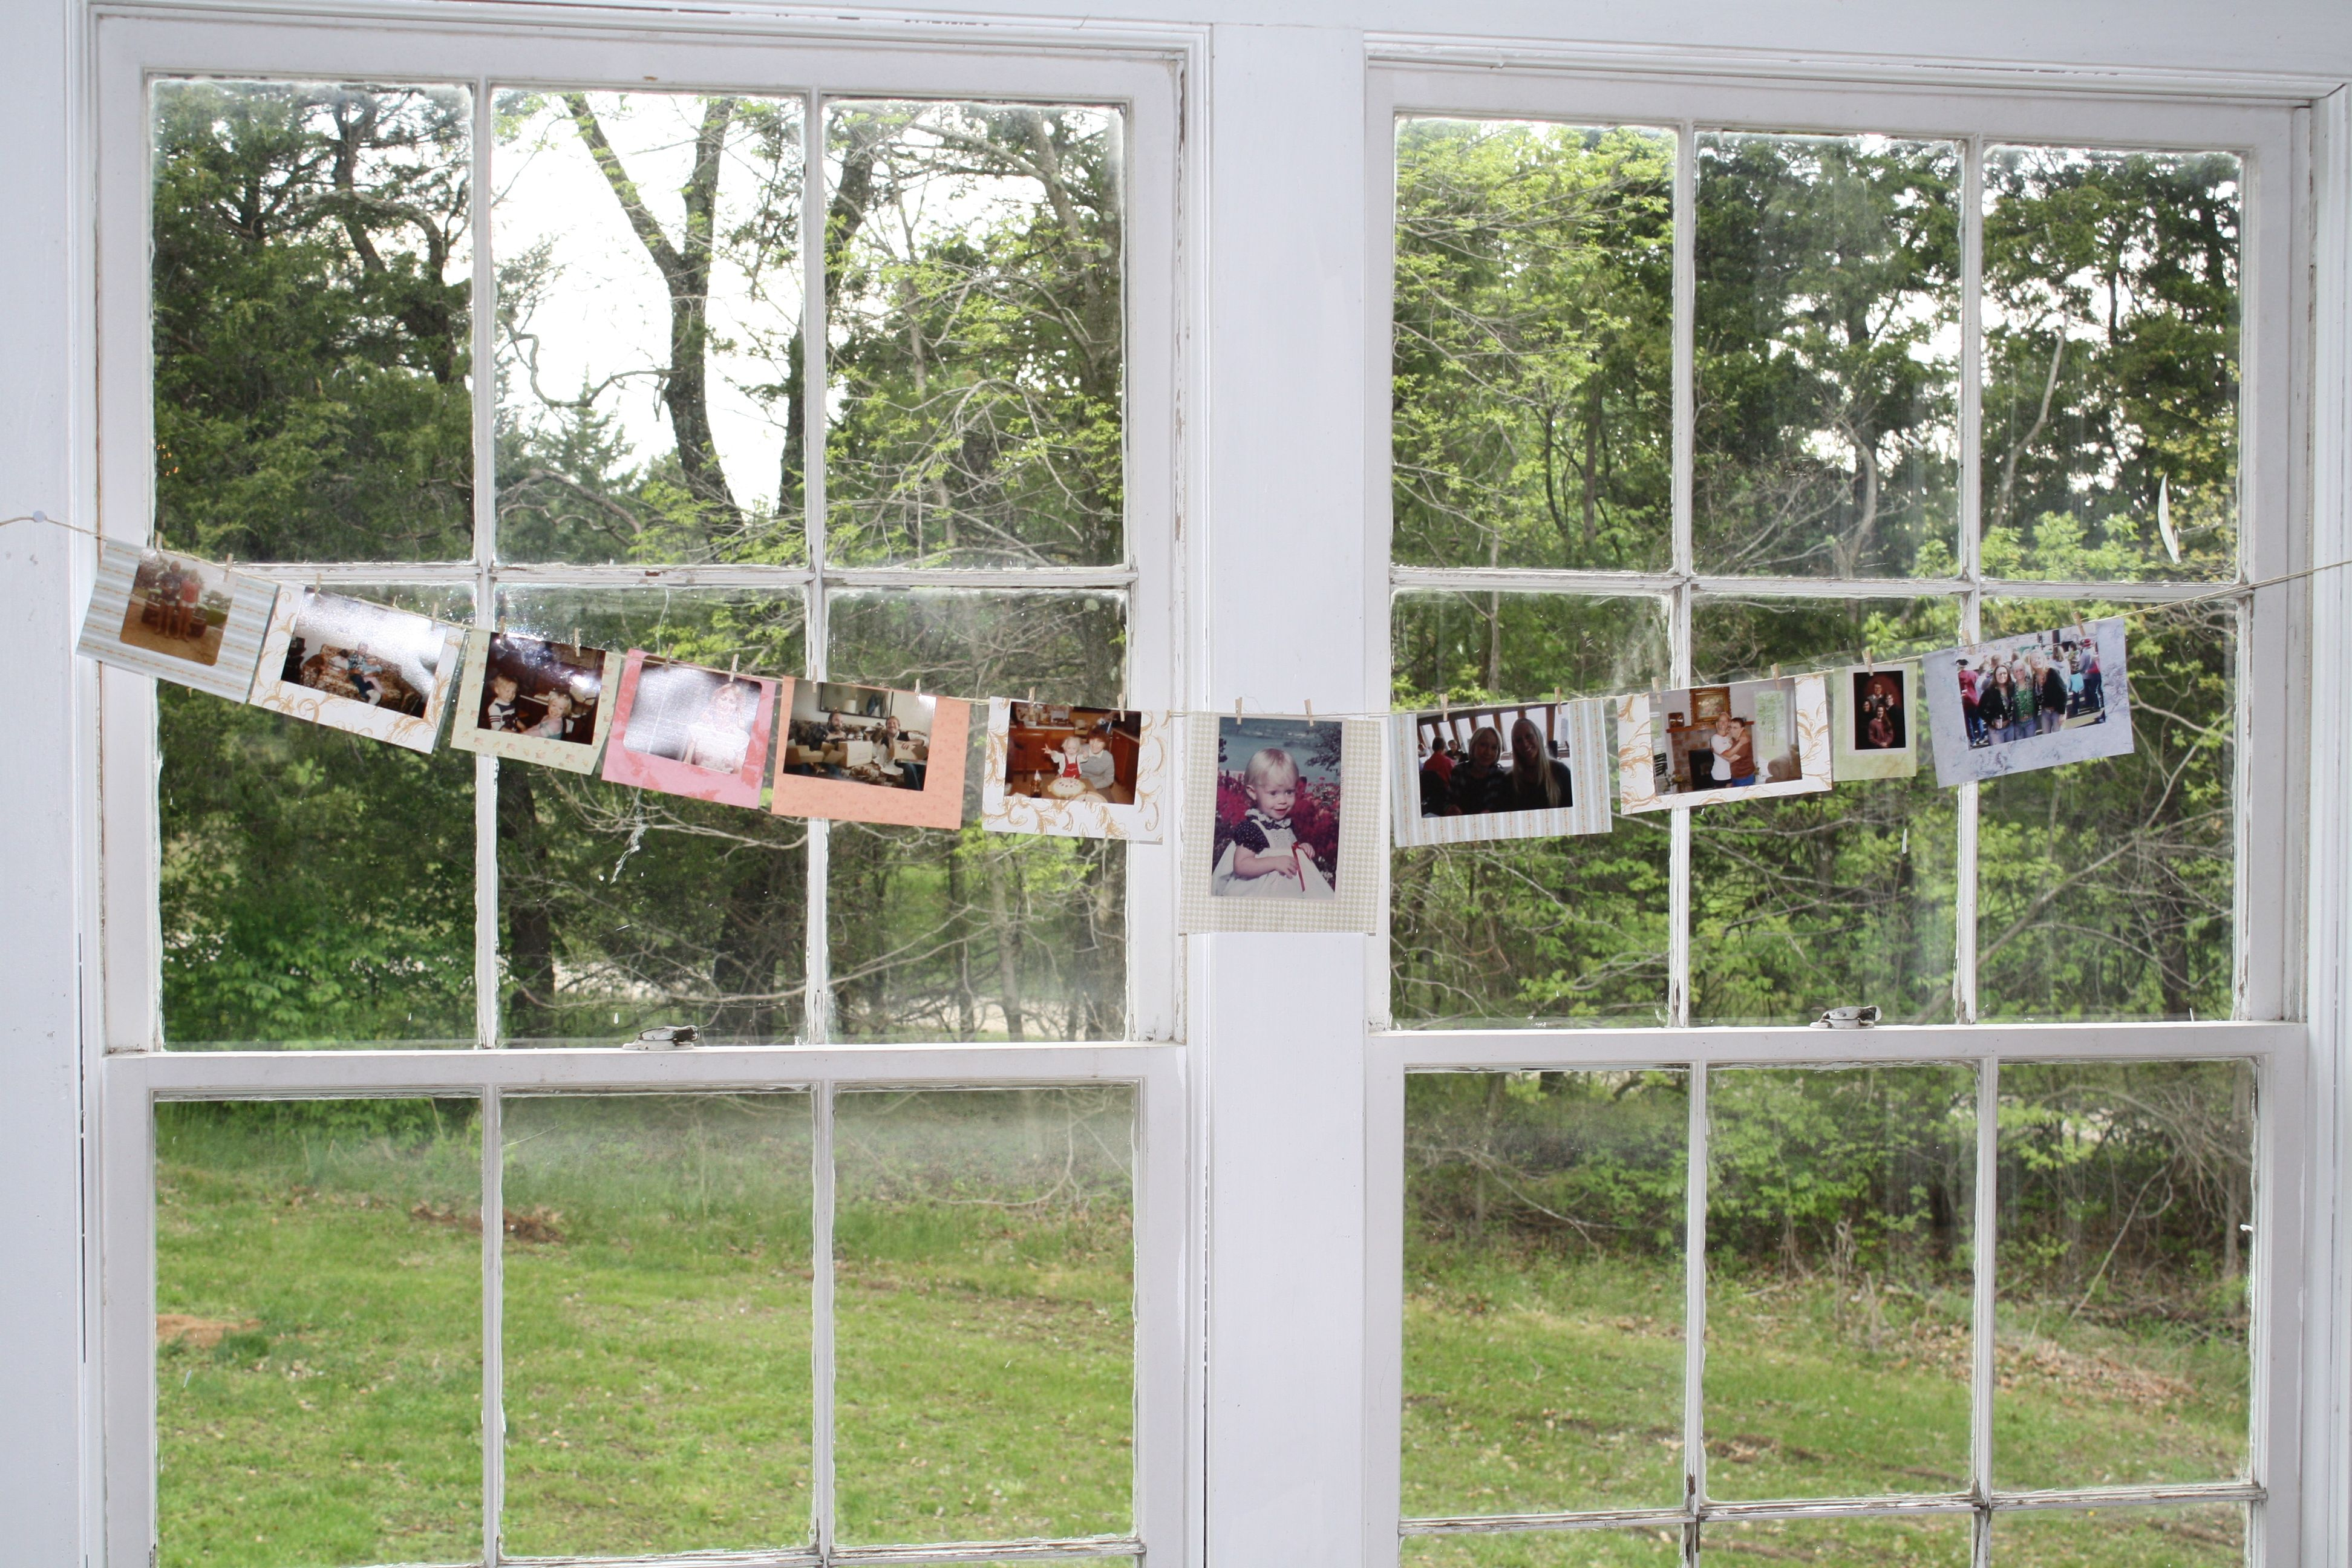 We hung pictures of family and friends from each window.